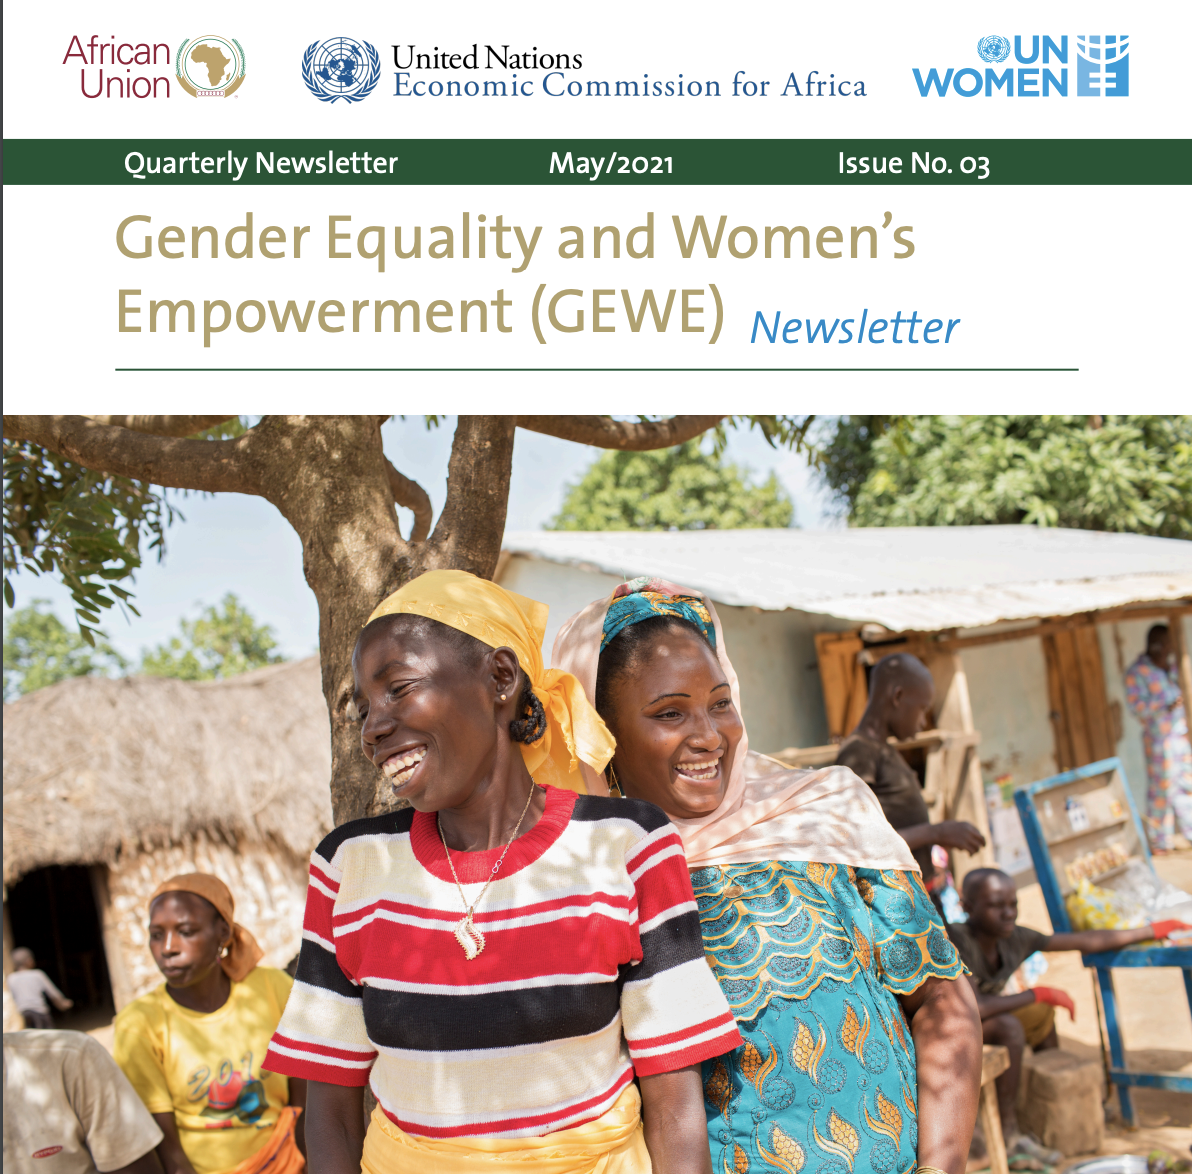 Gender Equality and Women's Empowerment (GEWE) Quarterly Newsletter